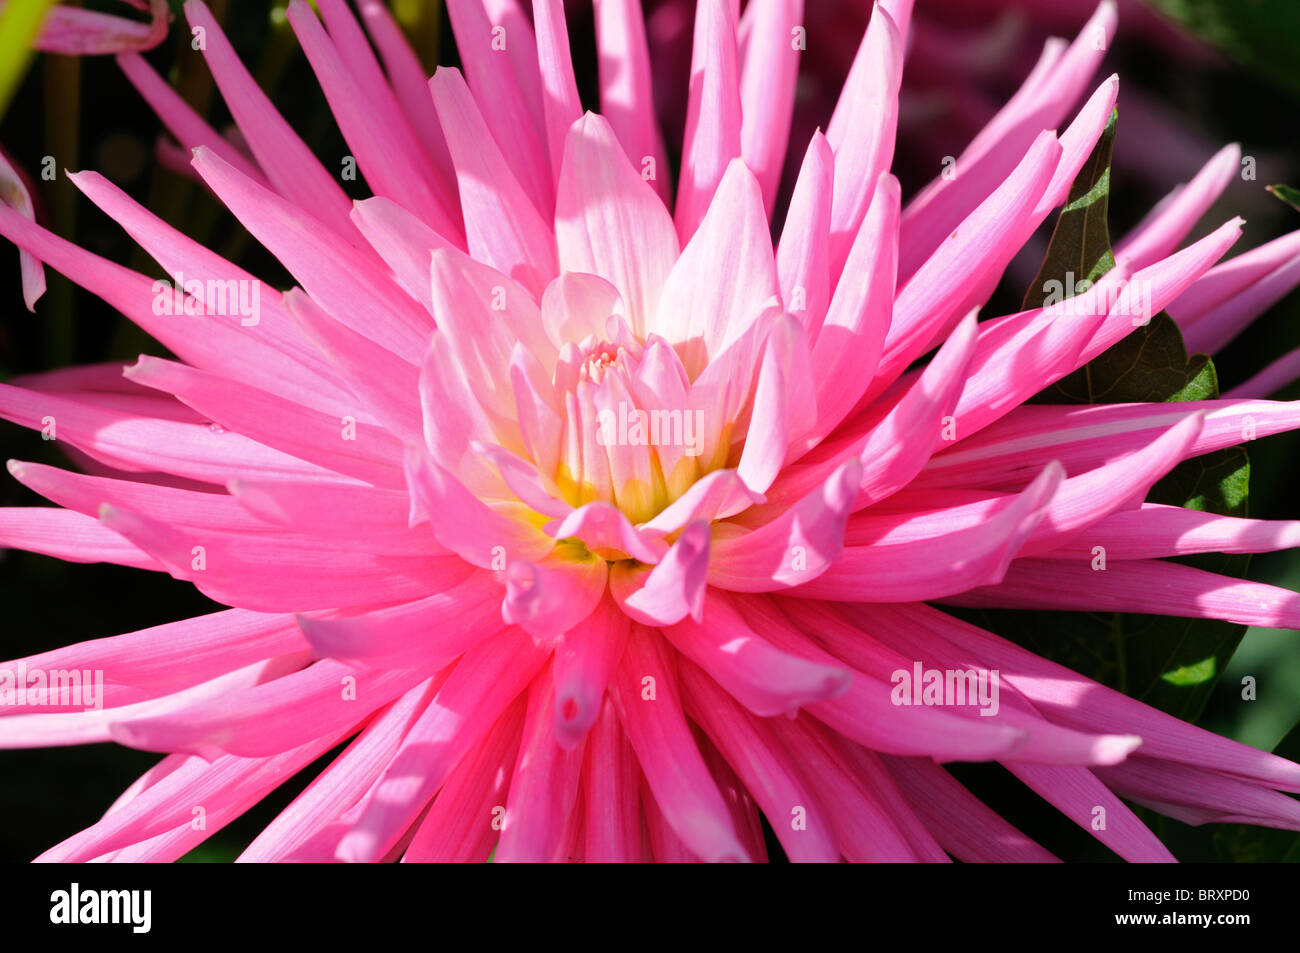 Dahlia rotonde small cactus pink flower bloom blossom type variety dahlia rotonde small cactus pink flower bloom blossom type variety hybrid color colour coloured colored mightylinksfo